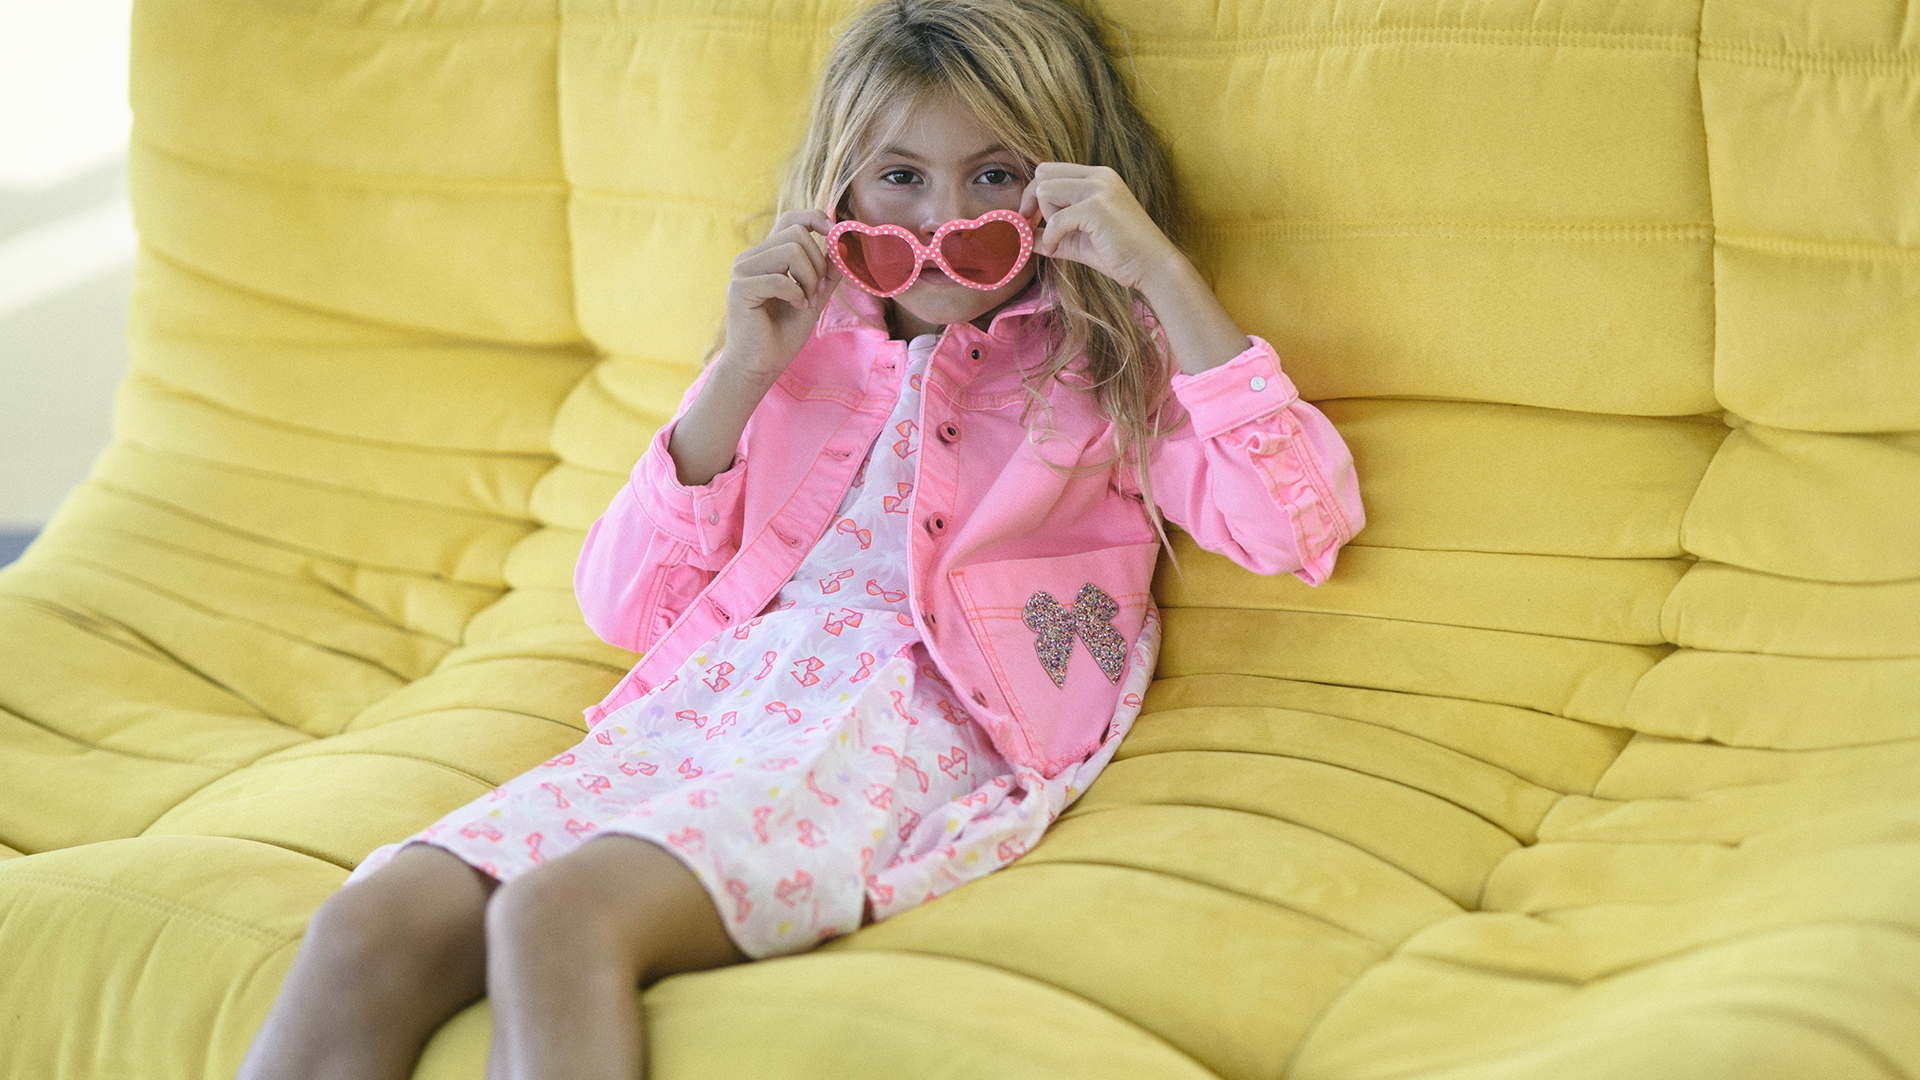 Girl in a yellow sofa with a pink dress